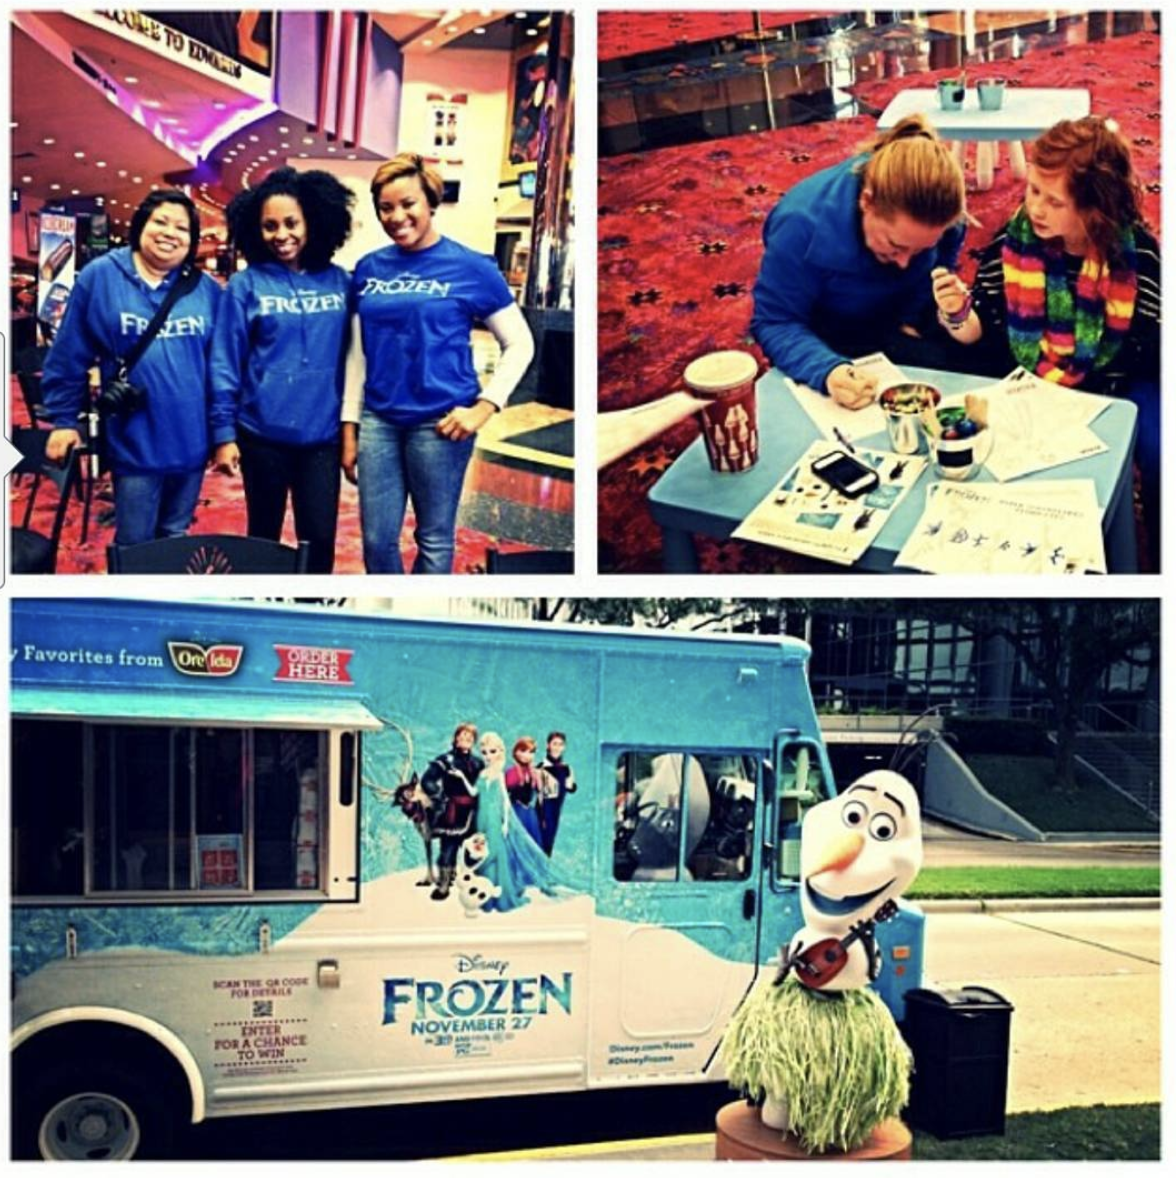 The first time I worked with a food truck marketing campaign.